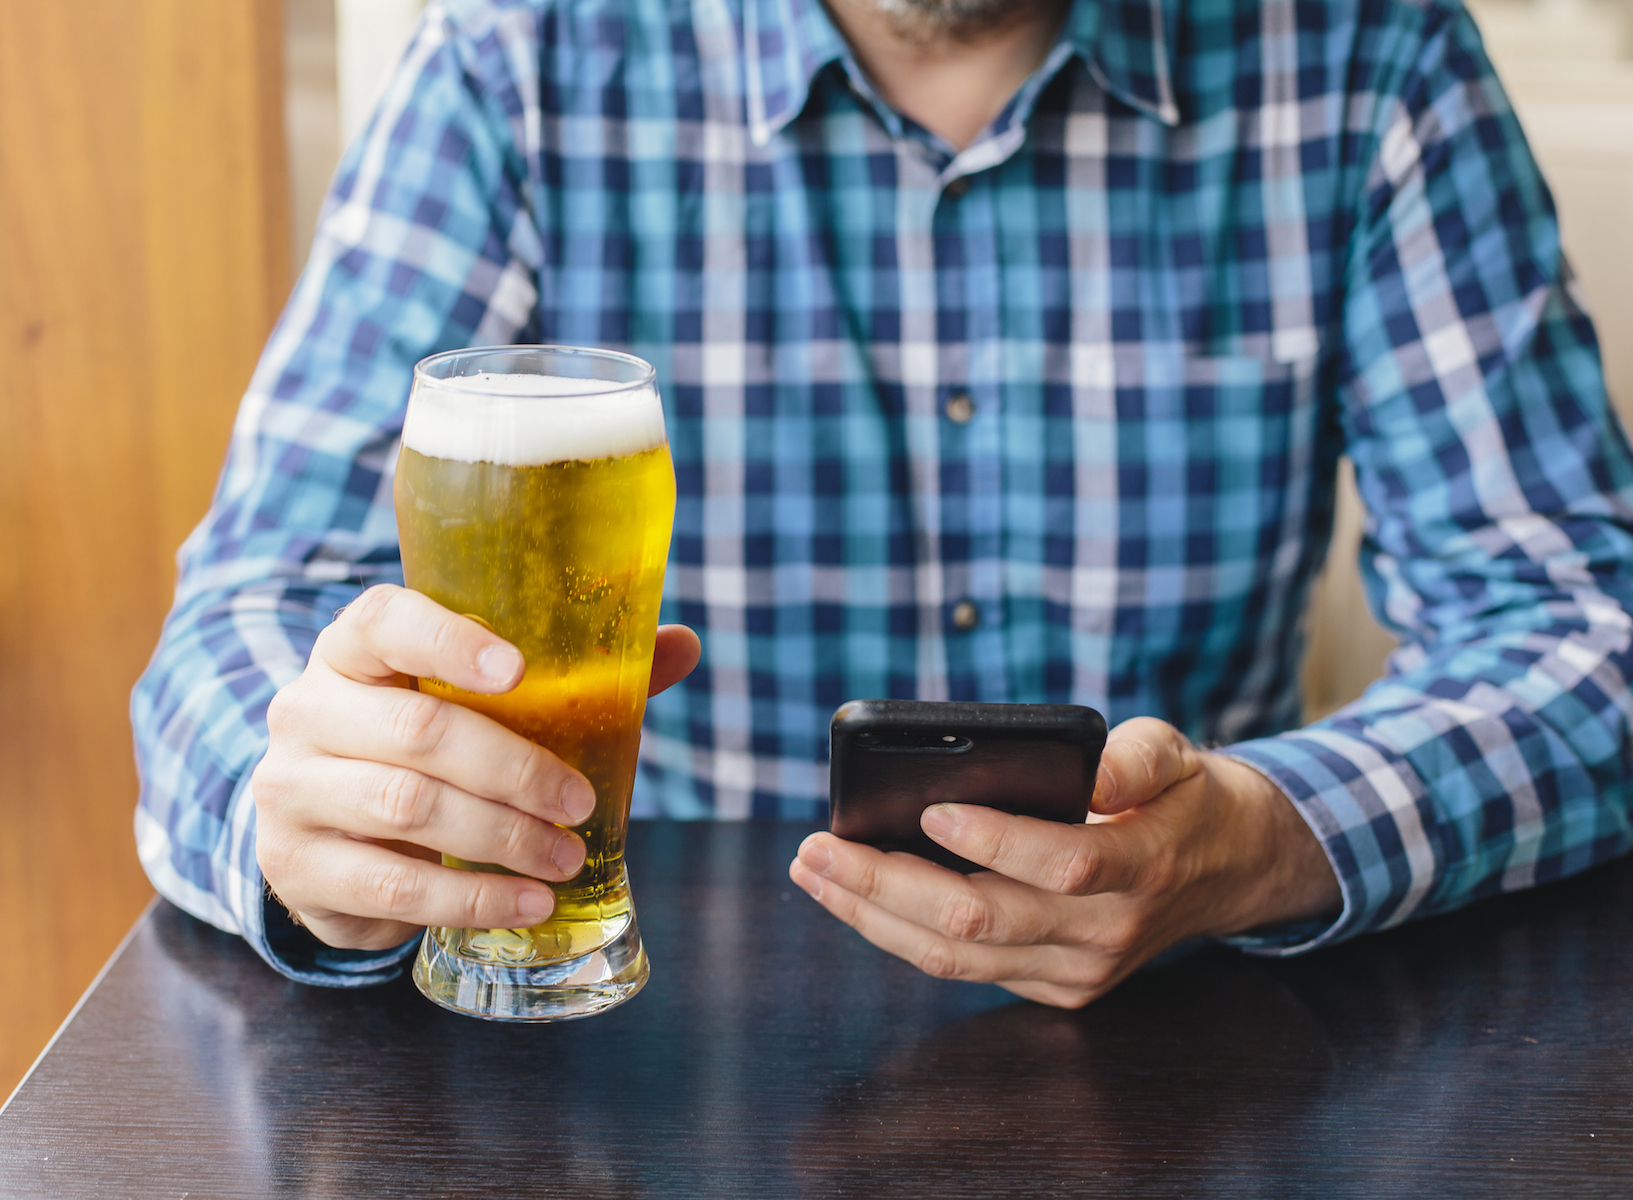 pintpass-free-beer-app-FT-BLOG0818.jpg